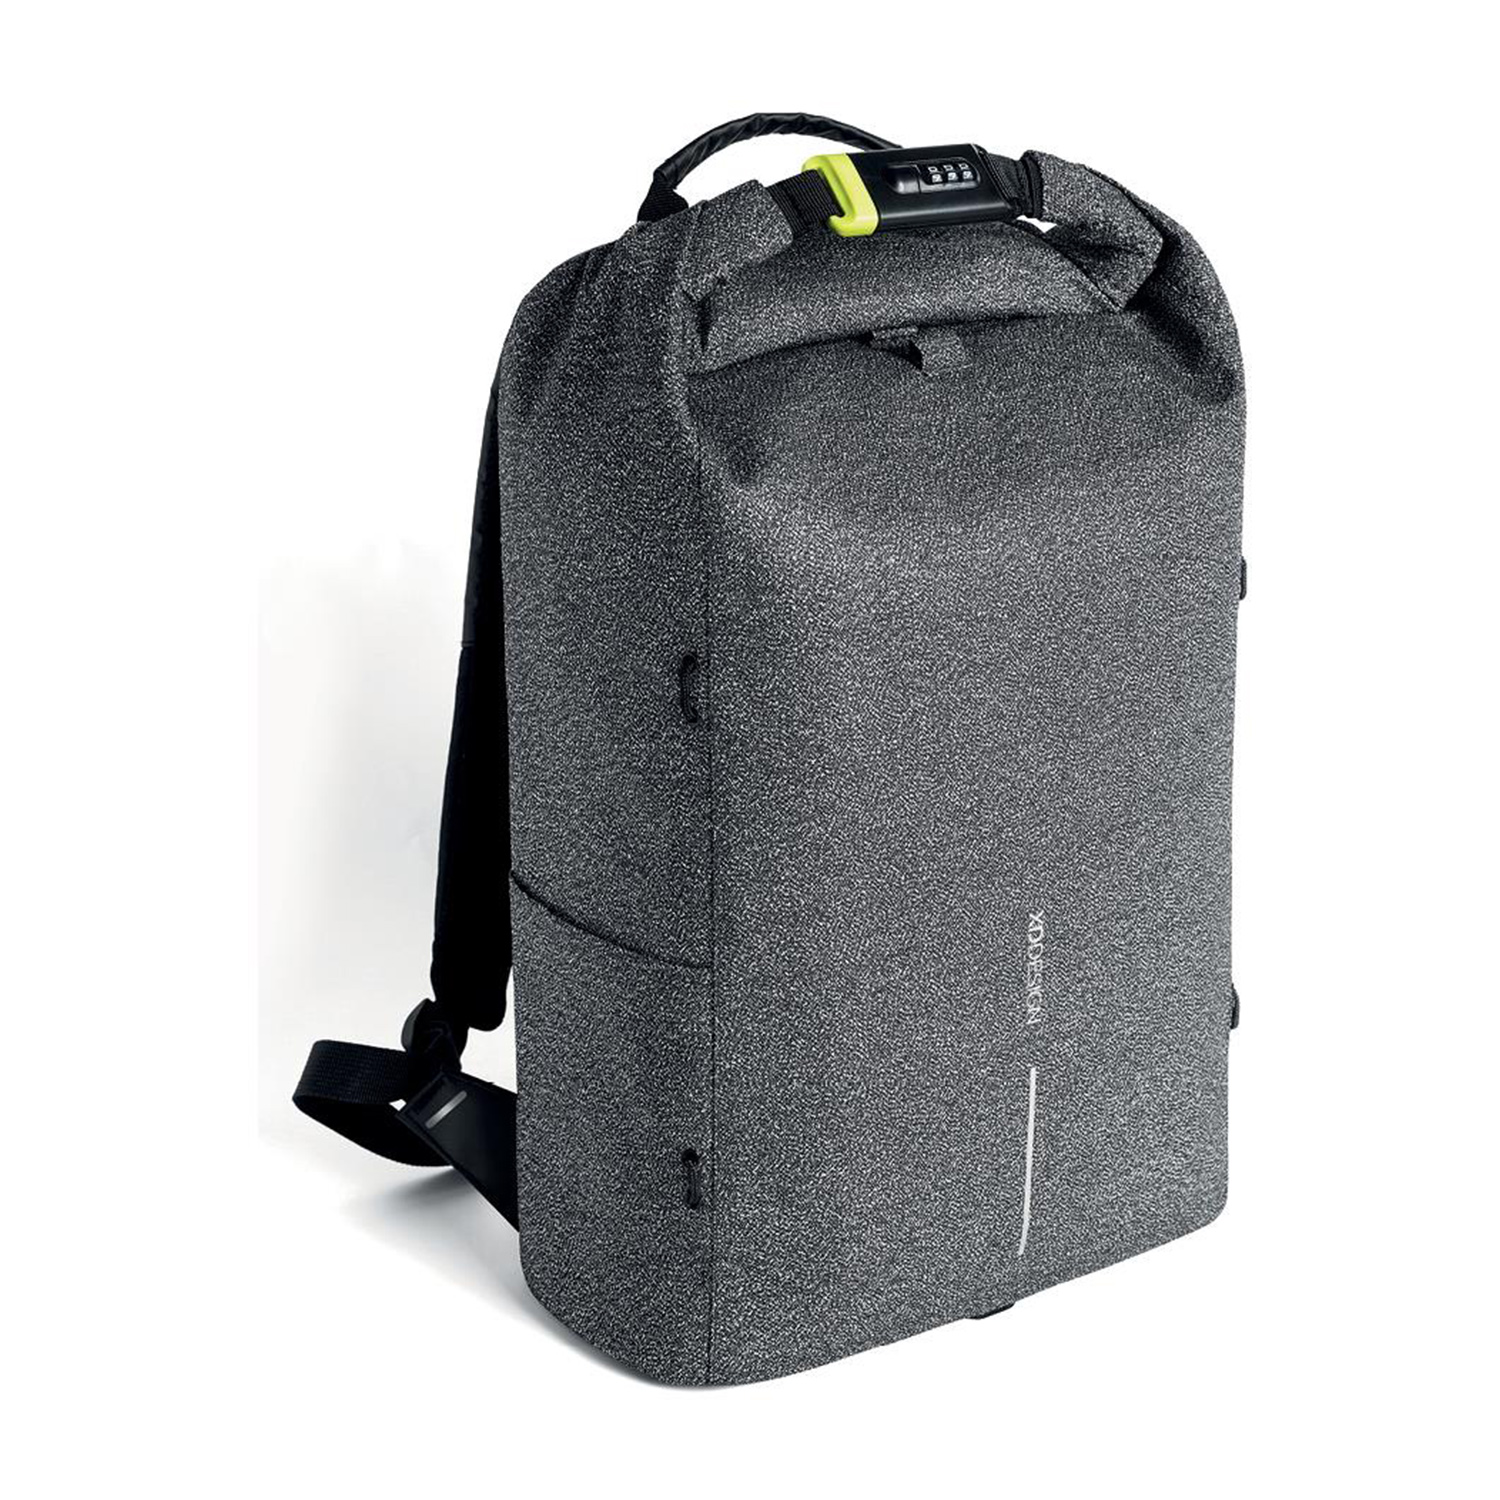 9b4fc2e877 Buy Bobby Urban Anti-Theft Cut-Proof Backpack in Singapore   Malaysia - The  Wallet Shop